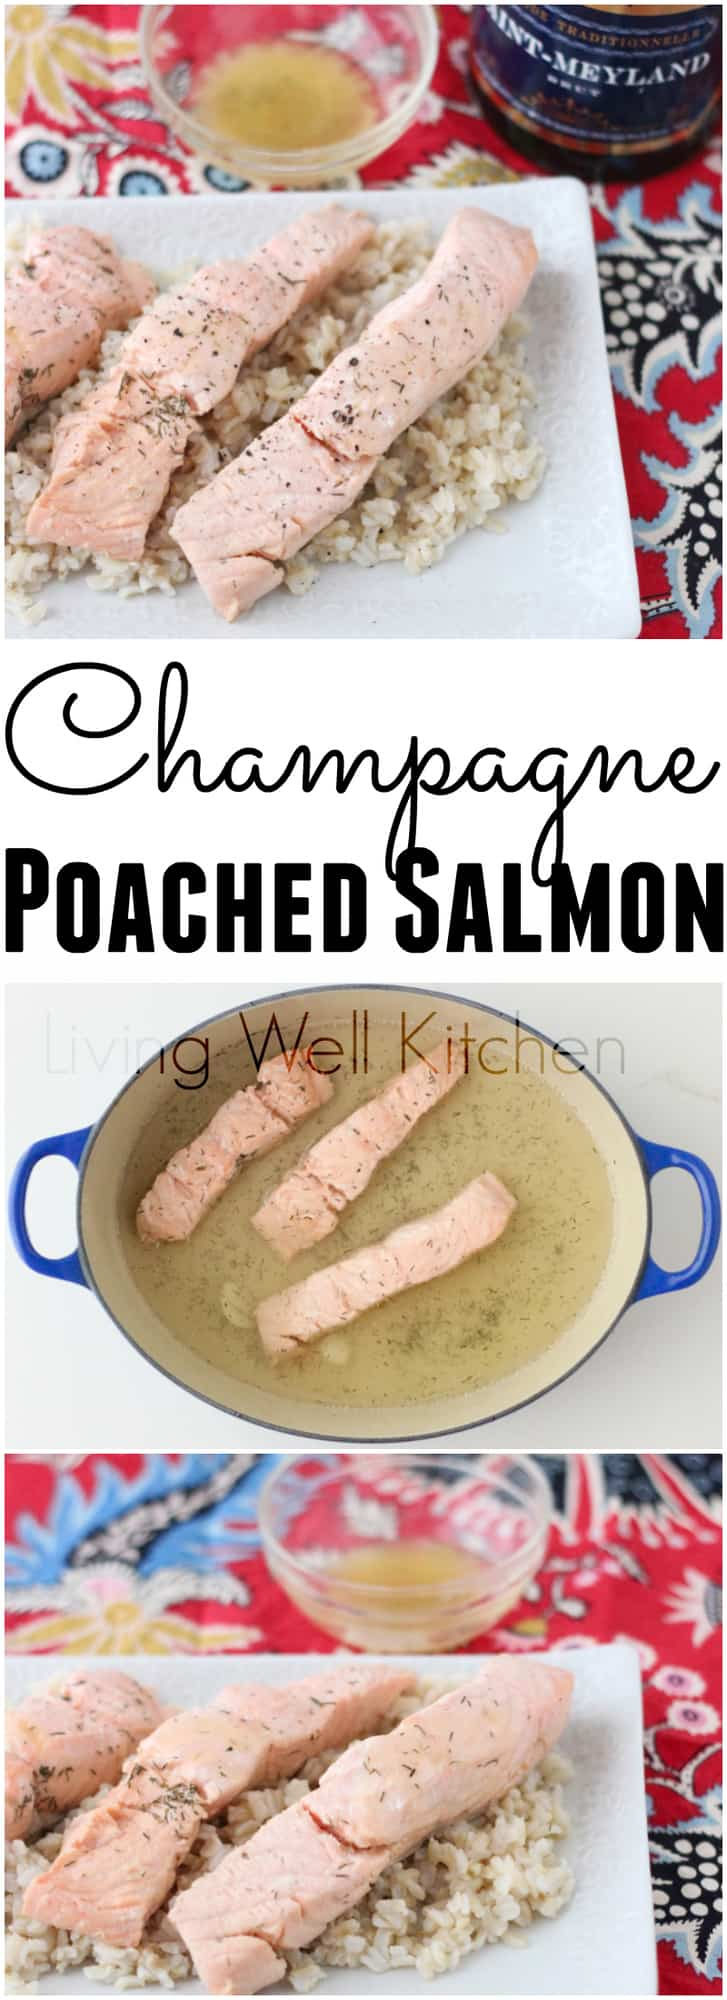 Lazy Girl's Champagne Poached Salmon proves that you don't have to get out of your pajamas just to have a fancy, delicious meal. Champagne Poached Salmon recipe from @memeinge is a healthy dinner idea that's gluten free and easy to make